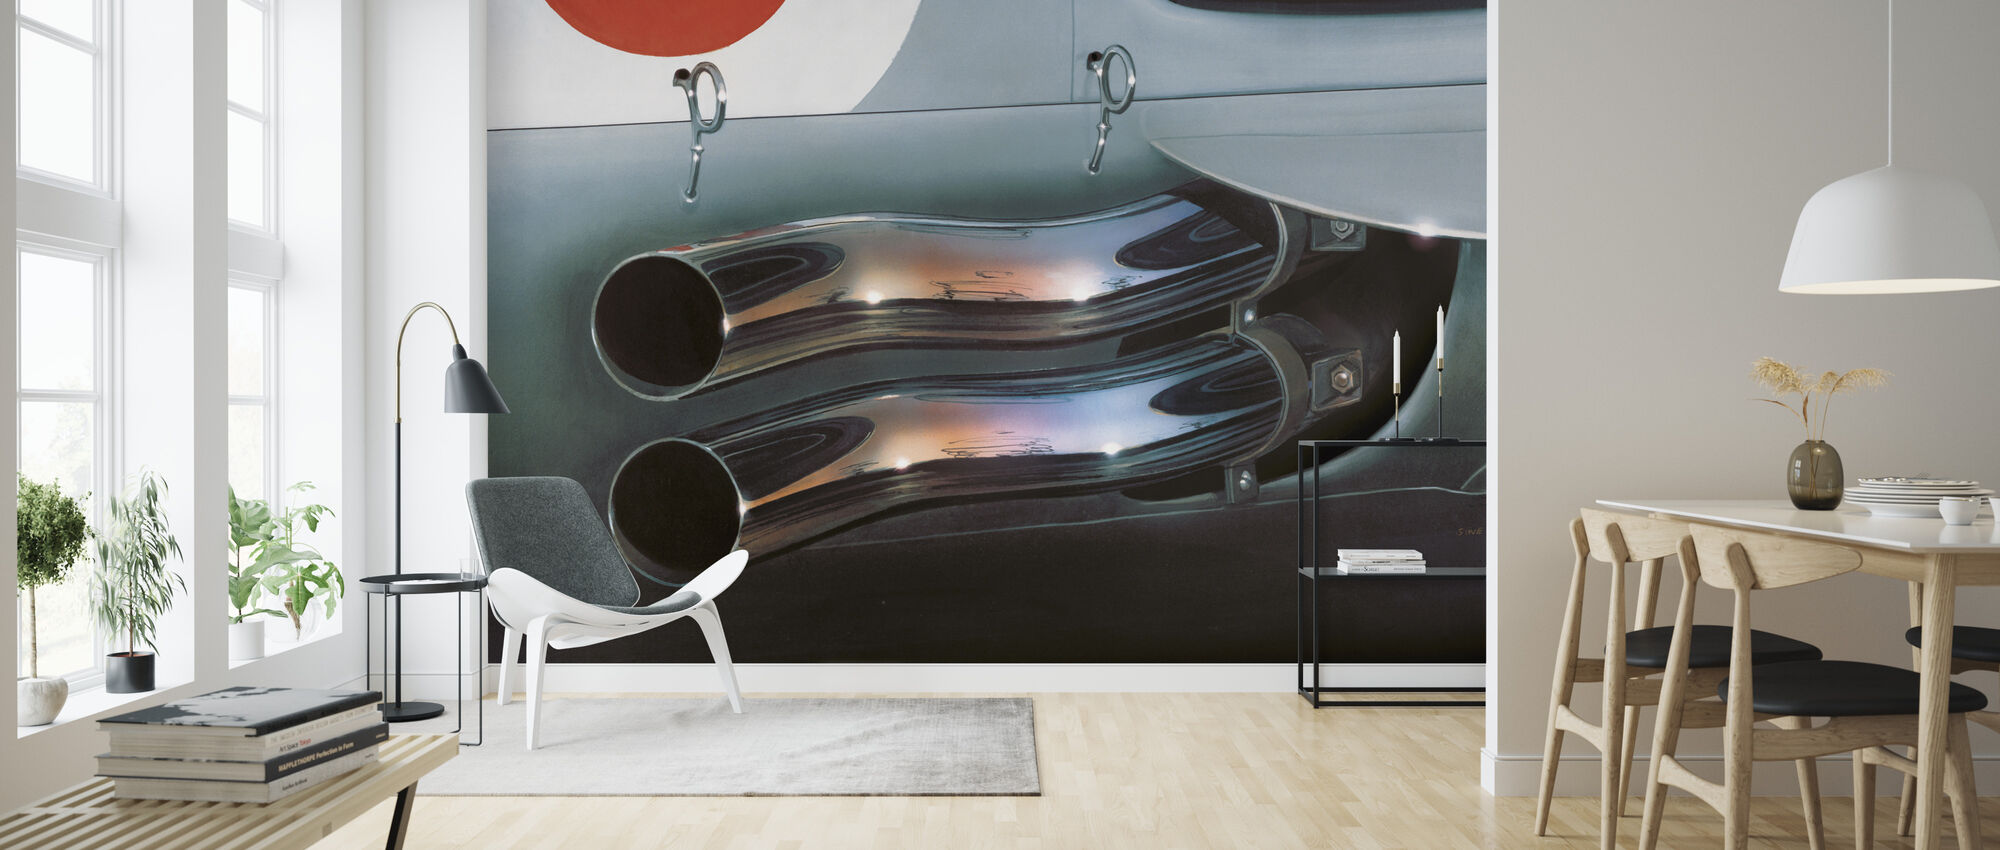 Exhaust Pipes - Wallpaper - Living Room